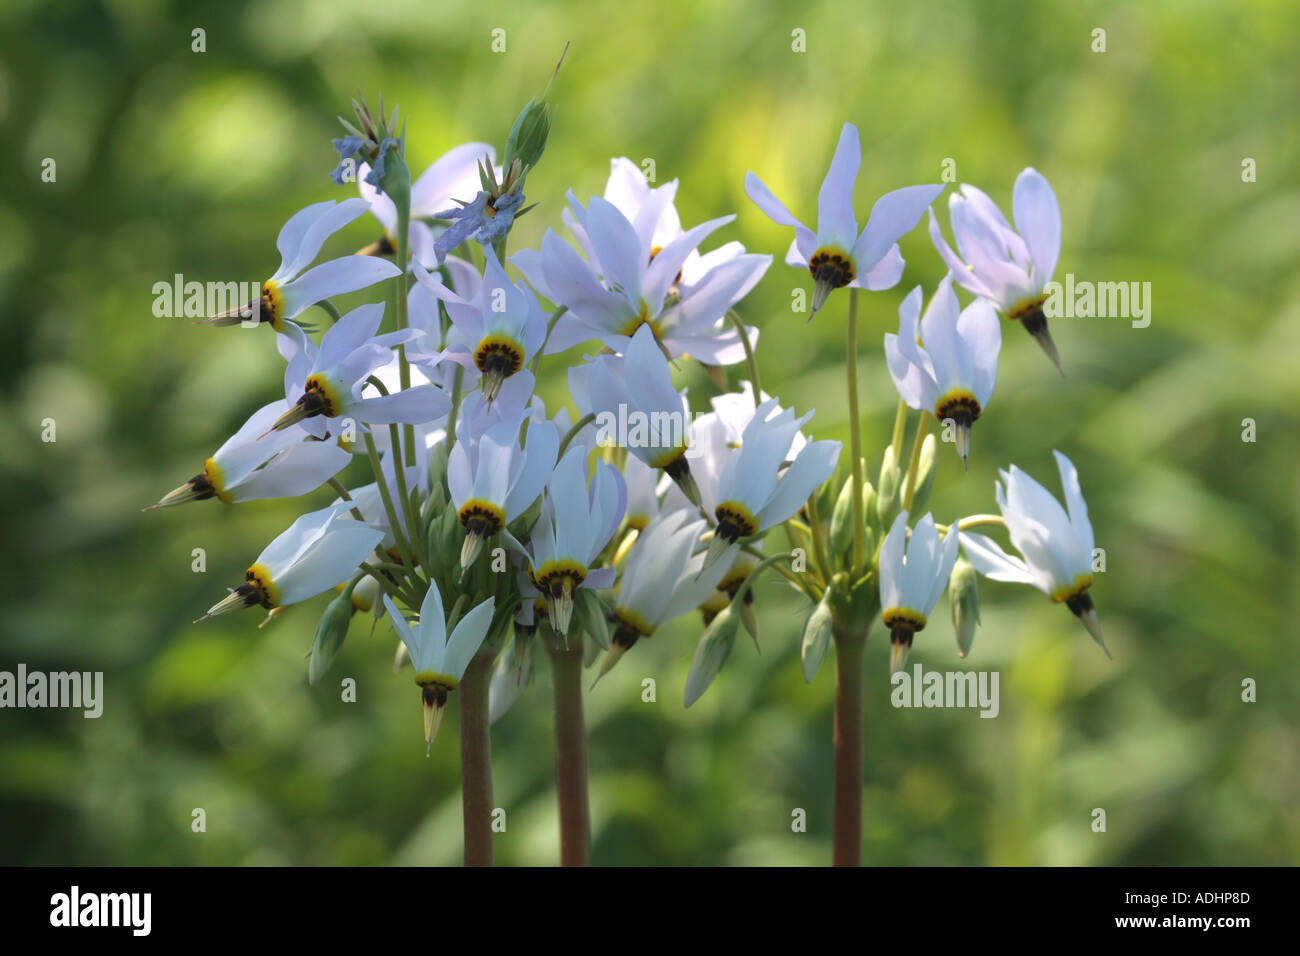 shooting star dodecatheon meadia prairie flower midwest northern illinois spring may flora wild photography photo photo - Stock Image